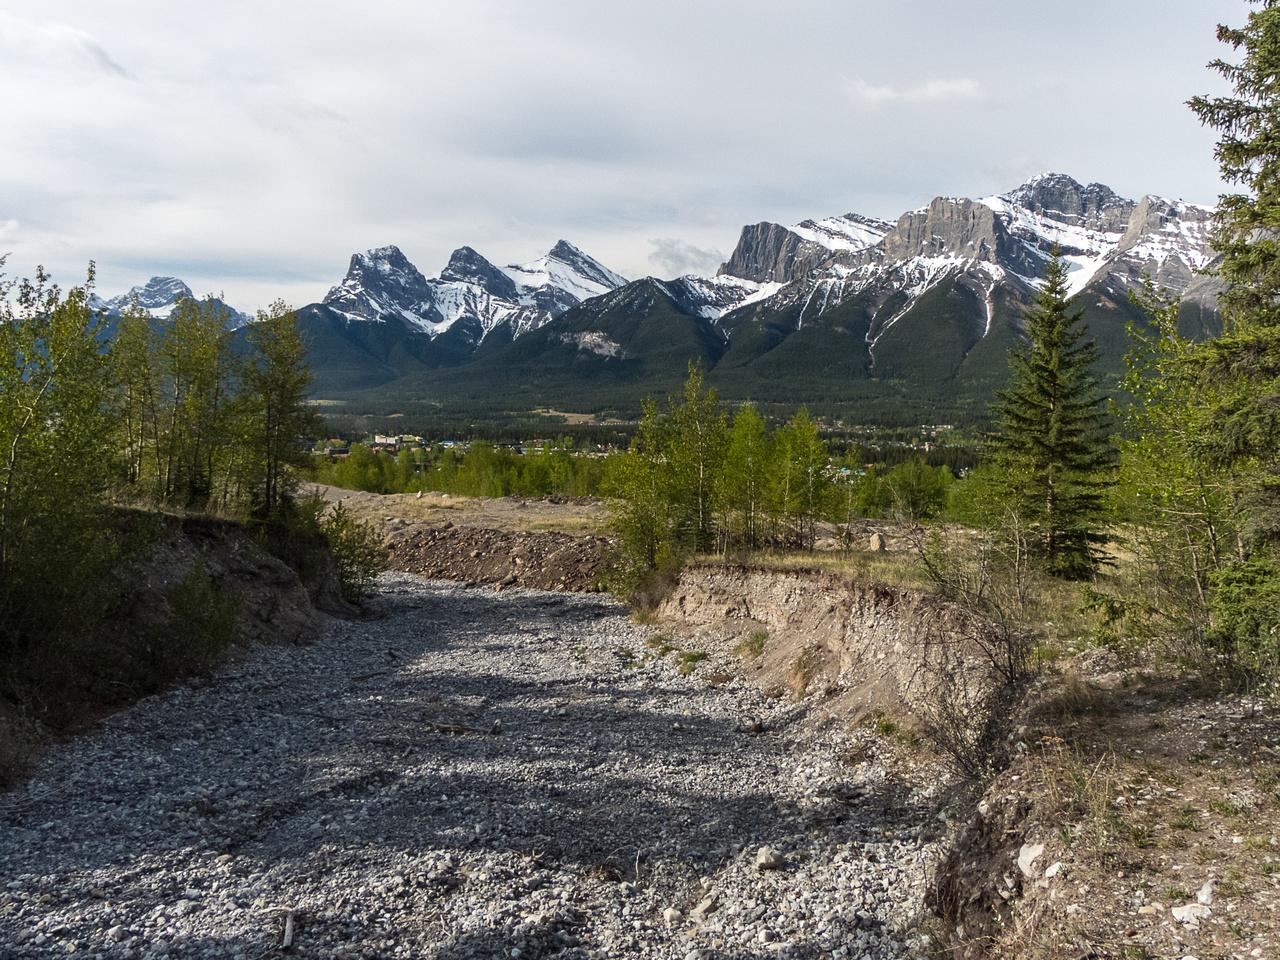 Looking back at the approach from near where I intersected the stream bed.